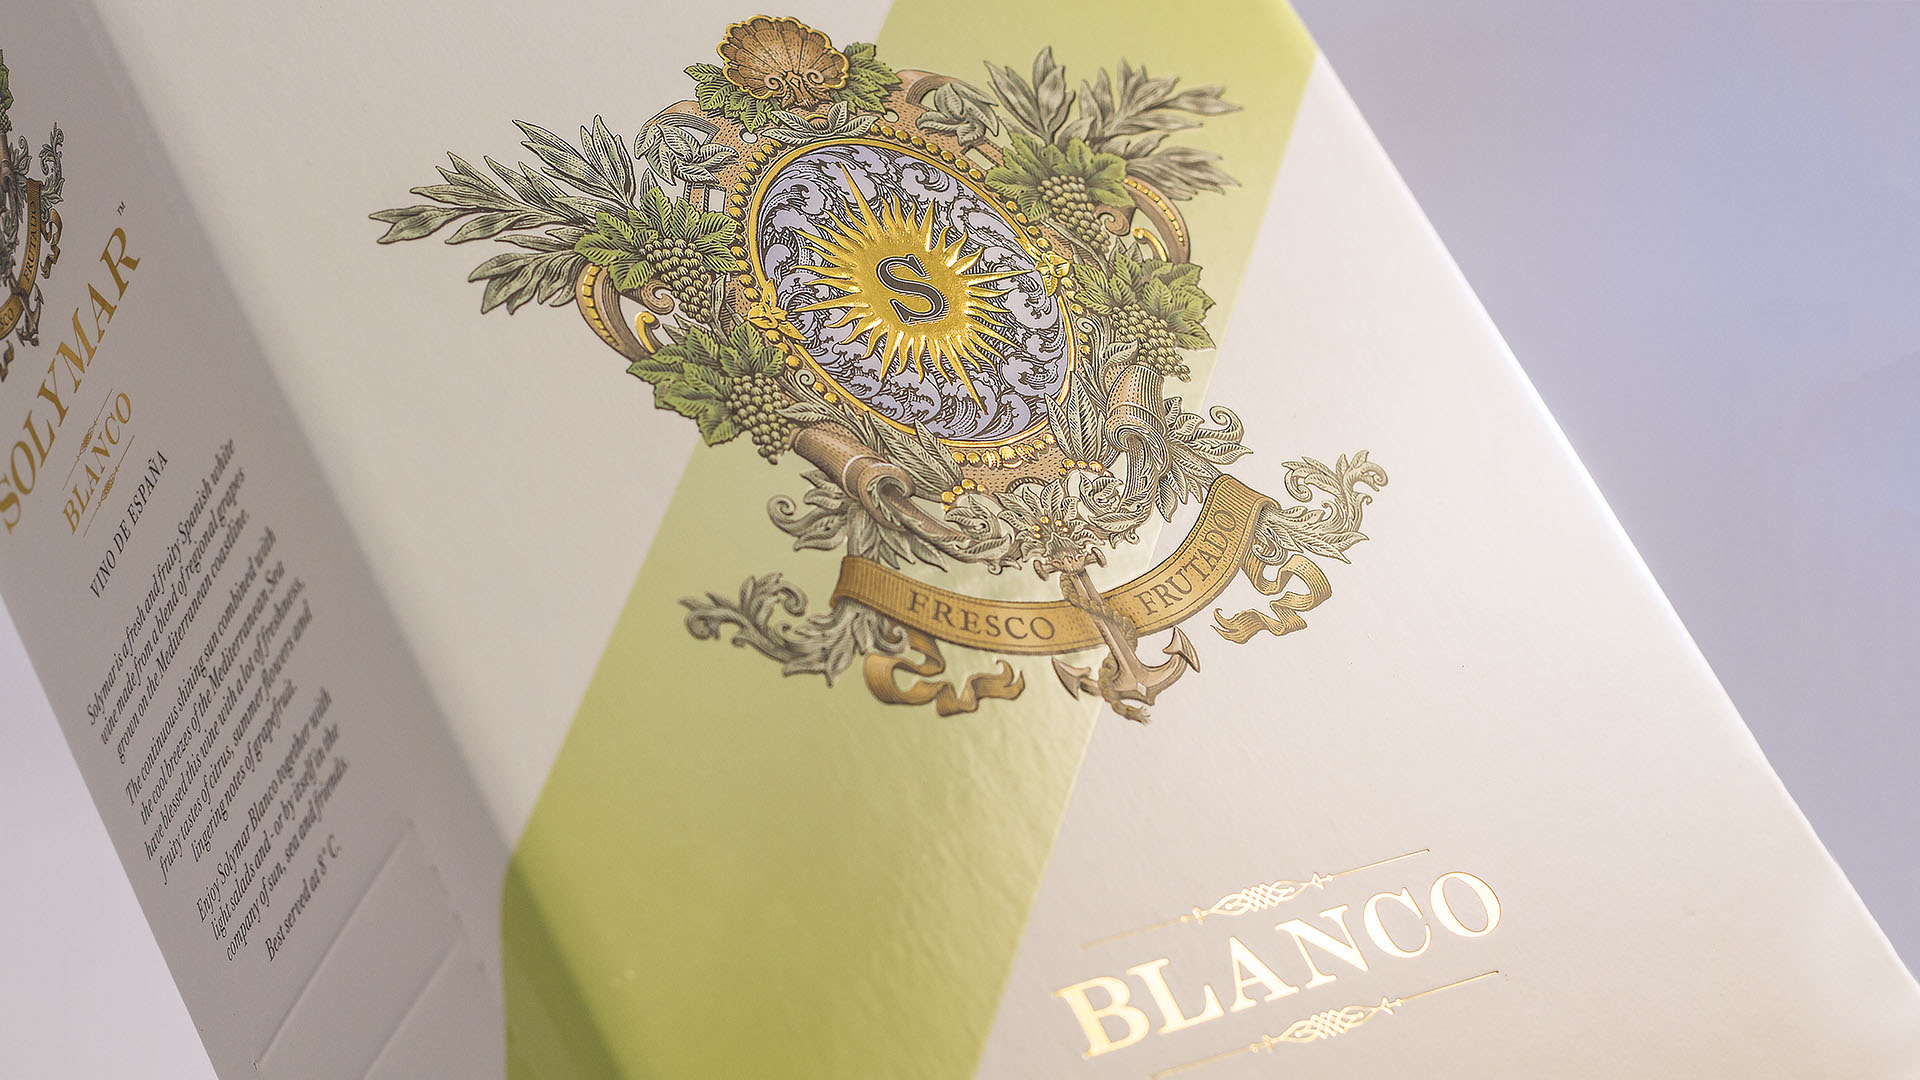 Solymar Blanco Bag In Box